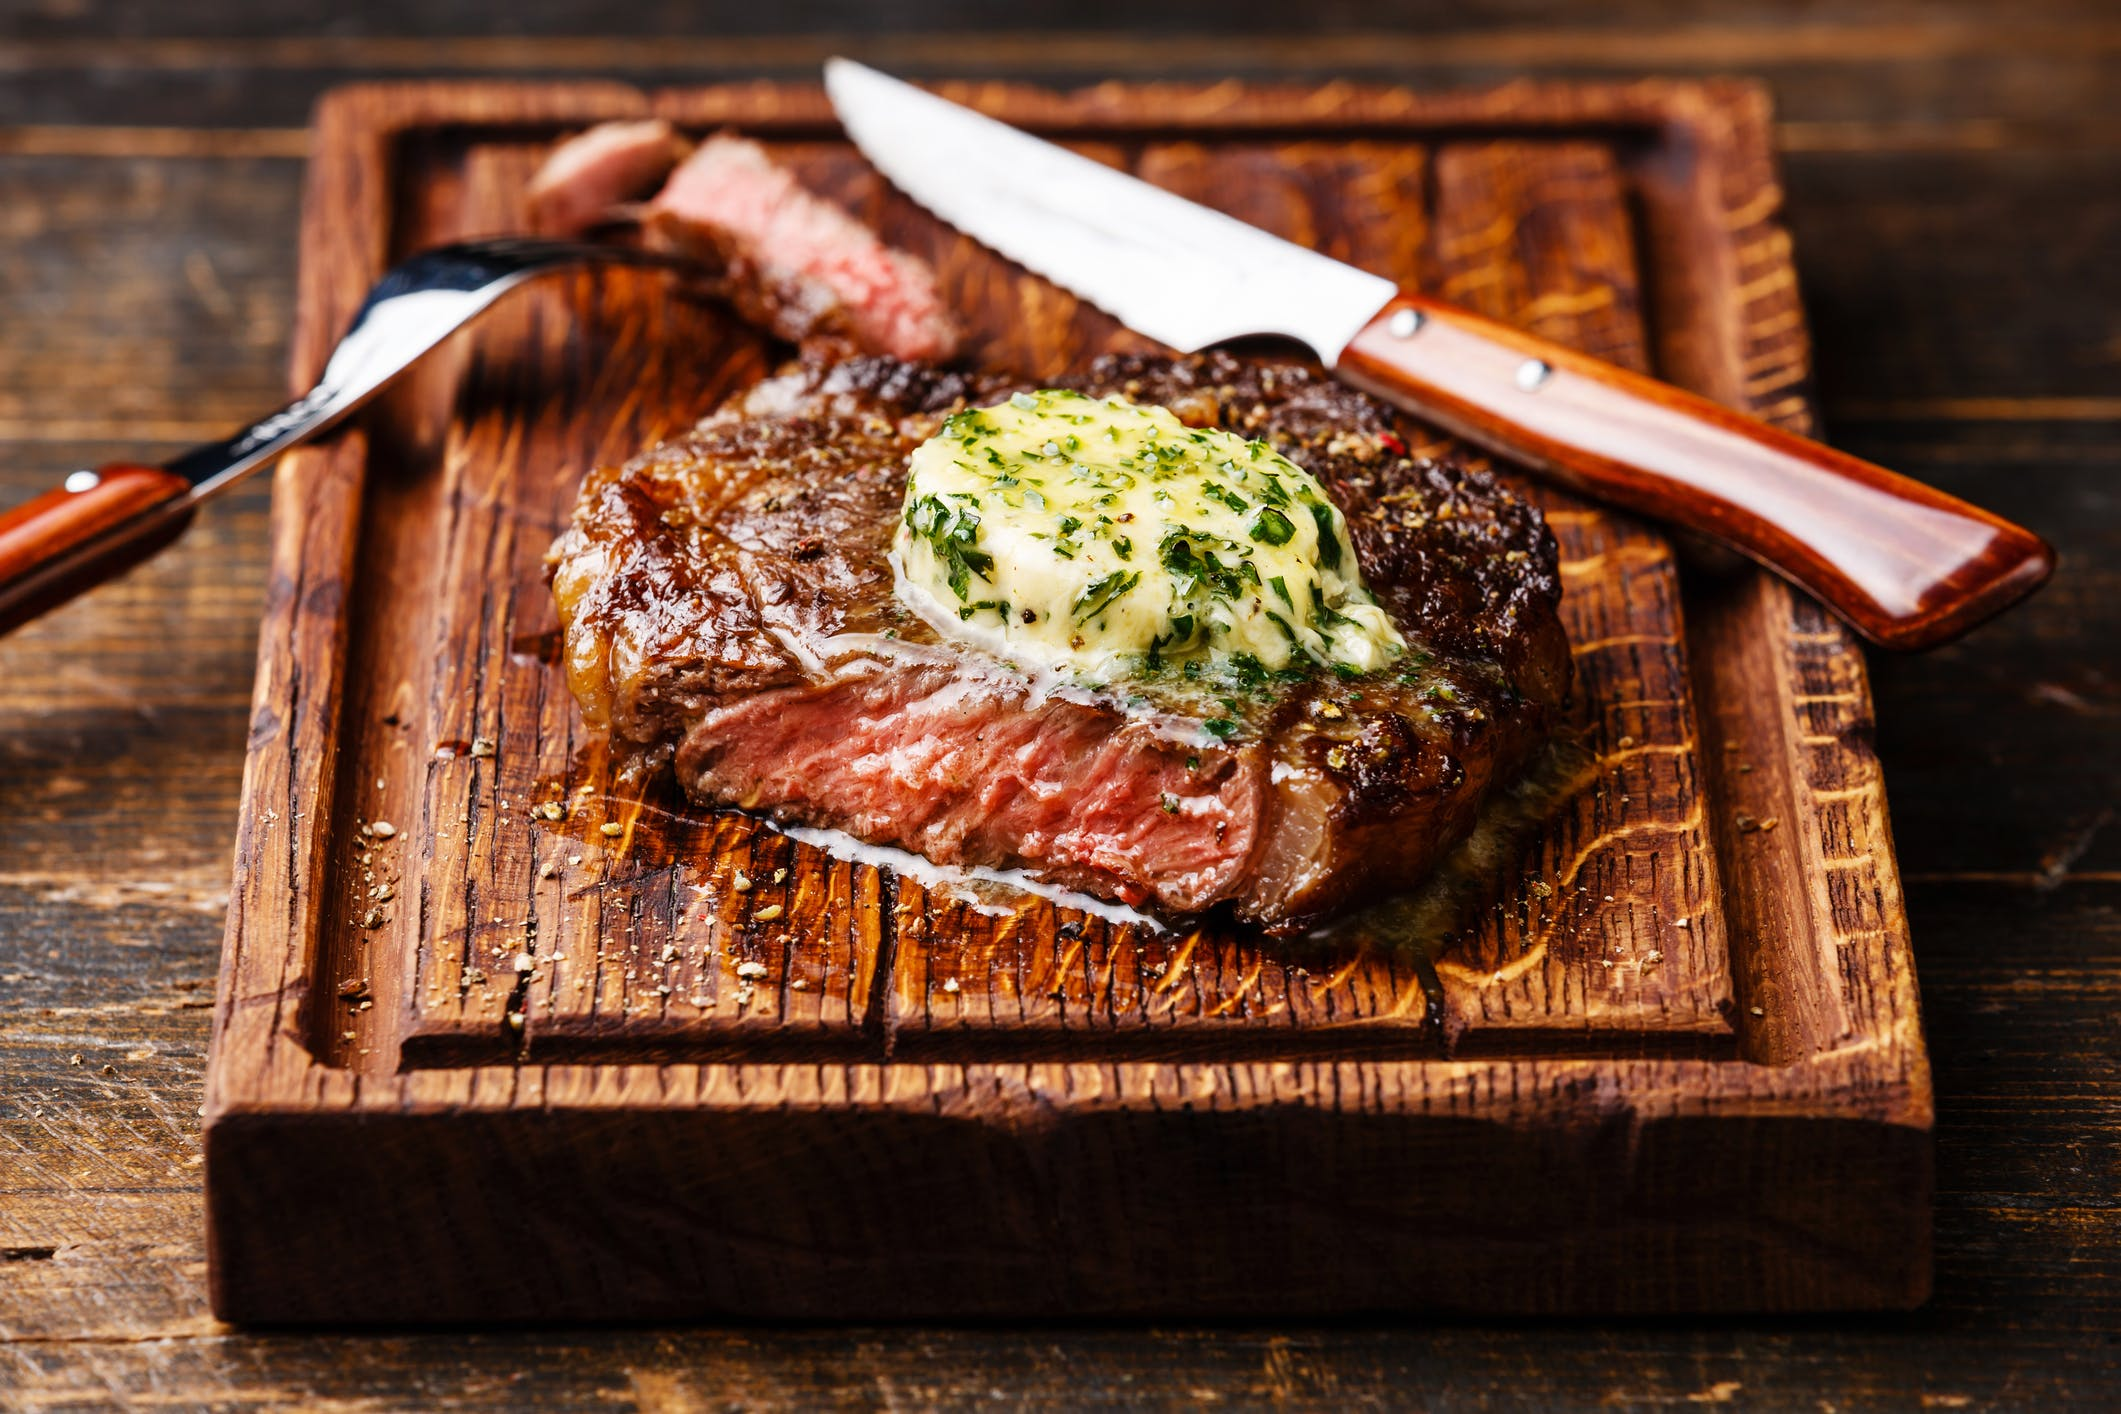 Grilled steak Ribeye with herb butter